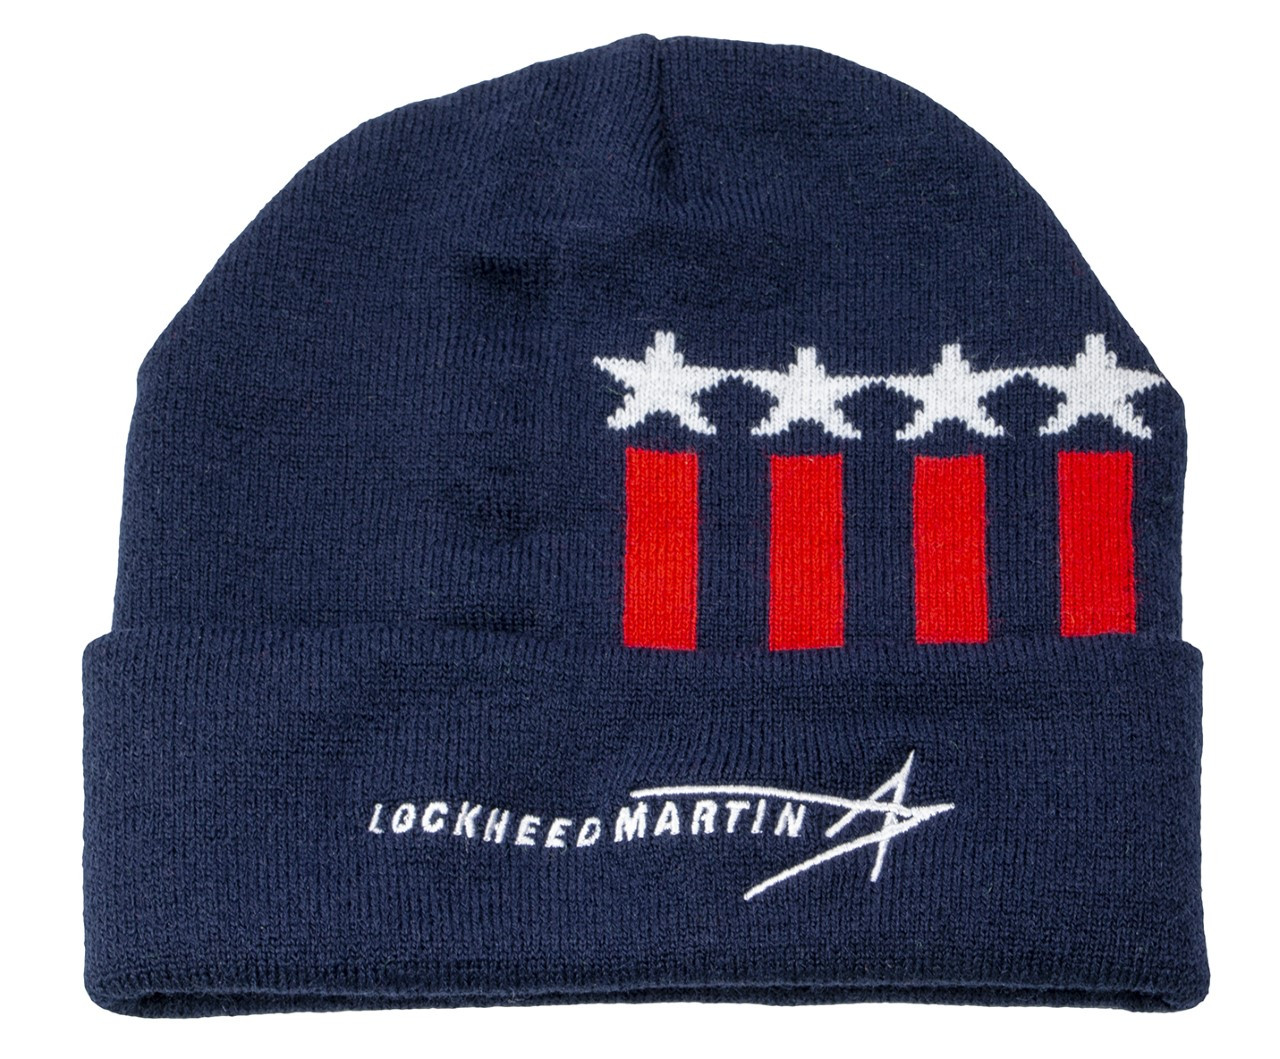 Stars & Stripes Knit Cap with Cuff (Made in the USA)